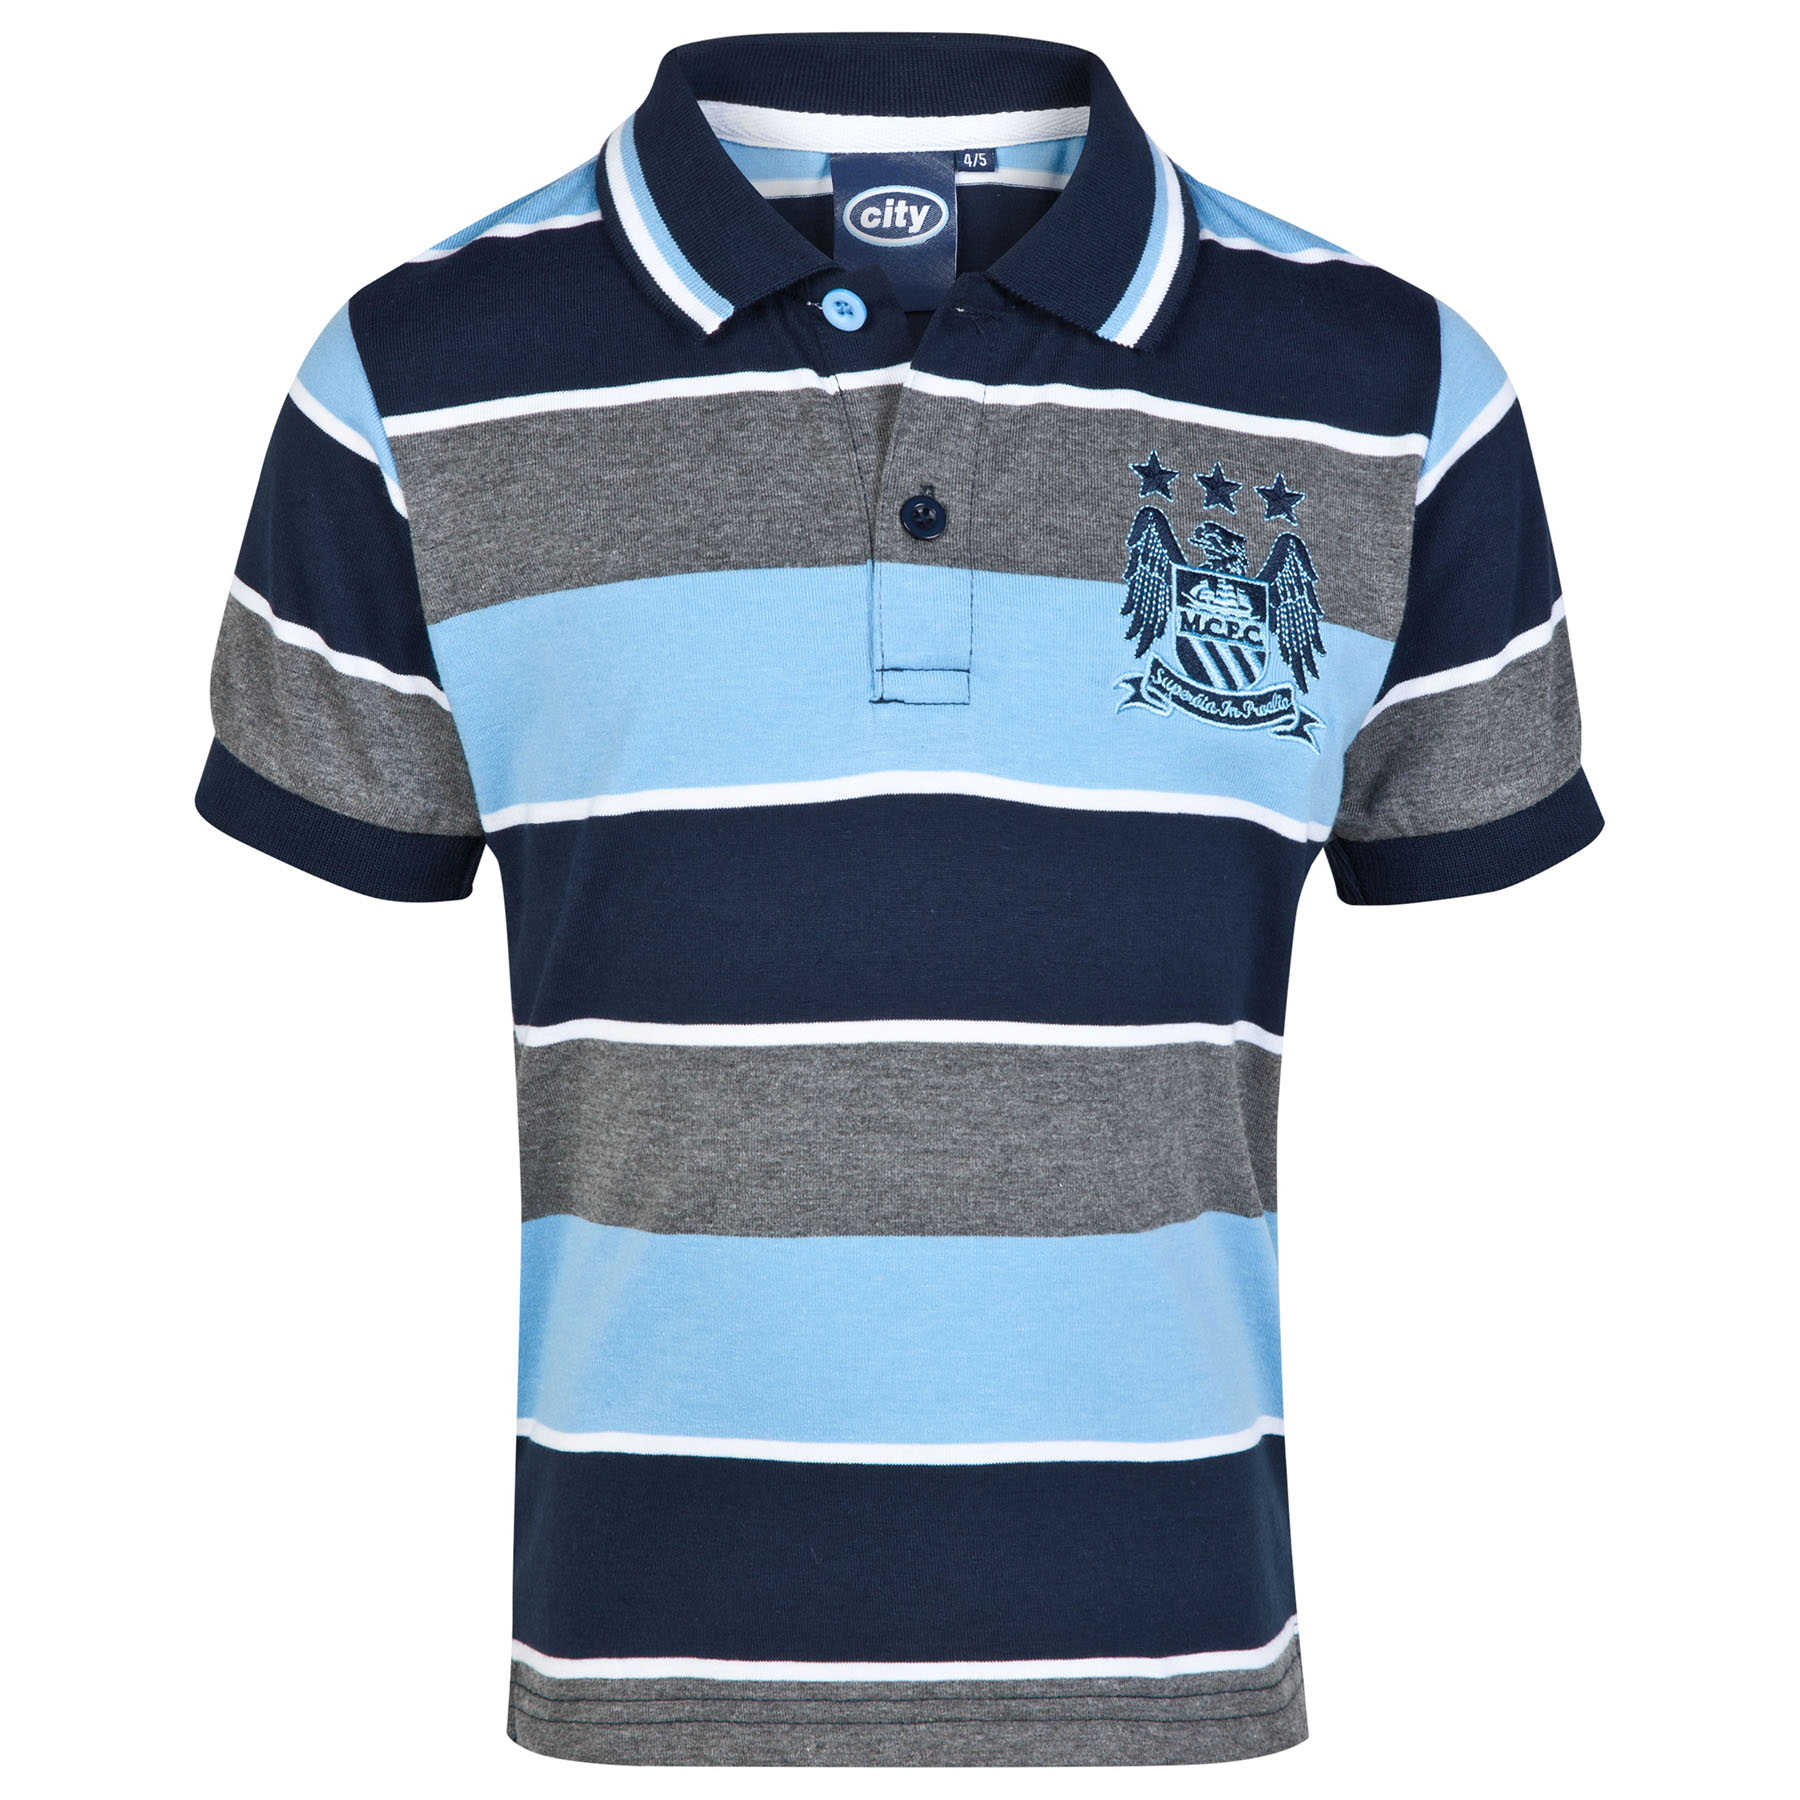 Manchester City Classic Stripe Polo Shirt - Grey/Navy/Sky - Infant Boys